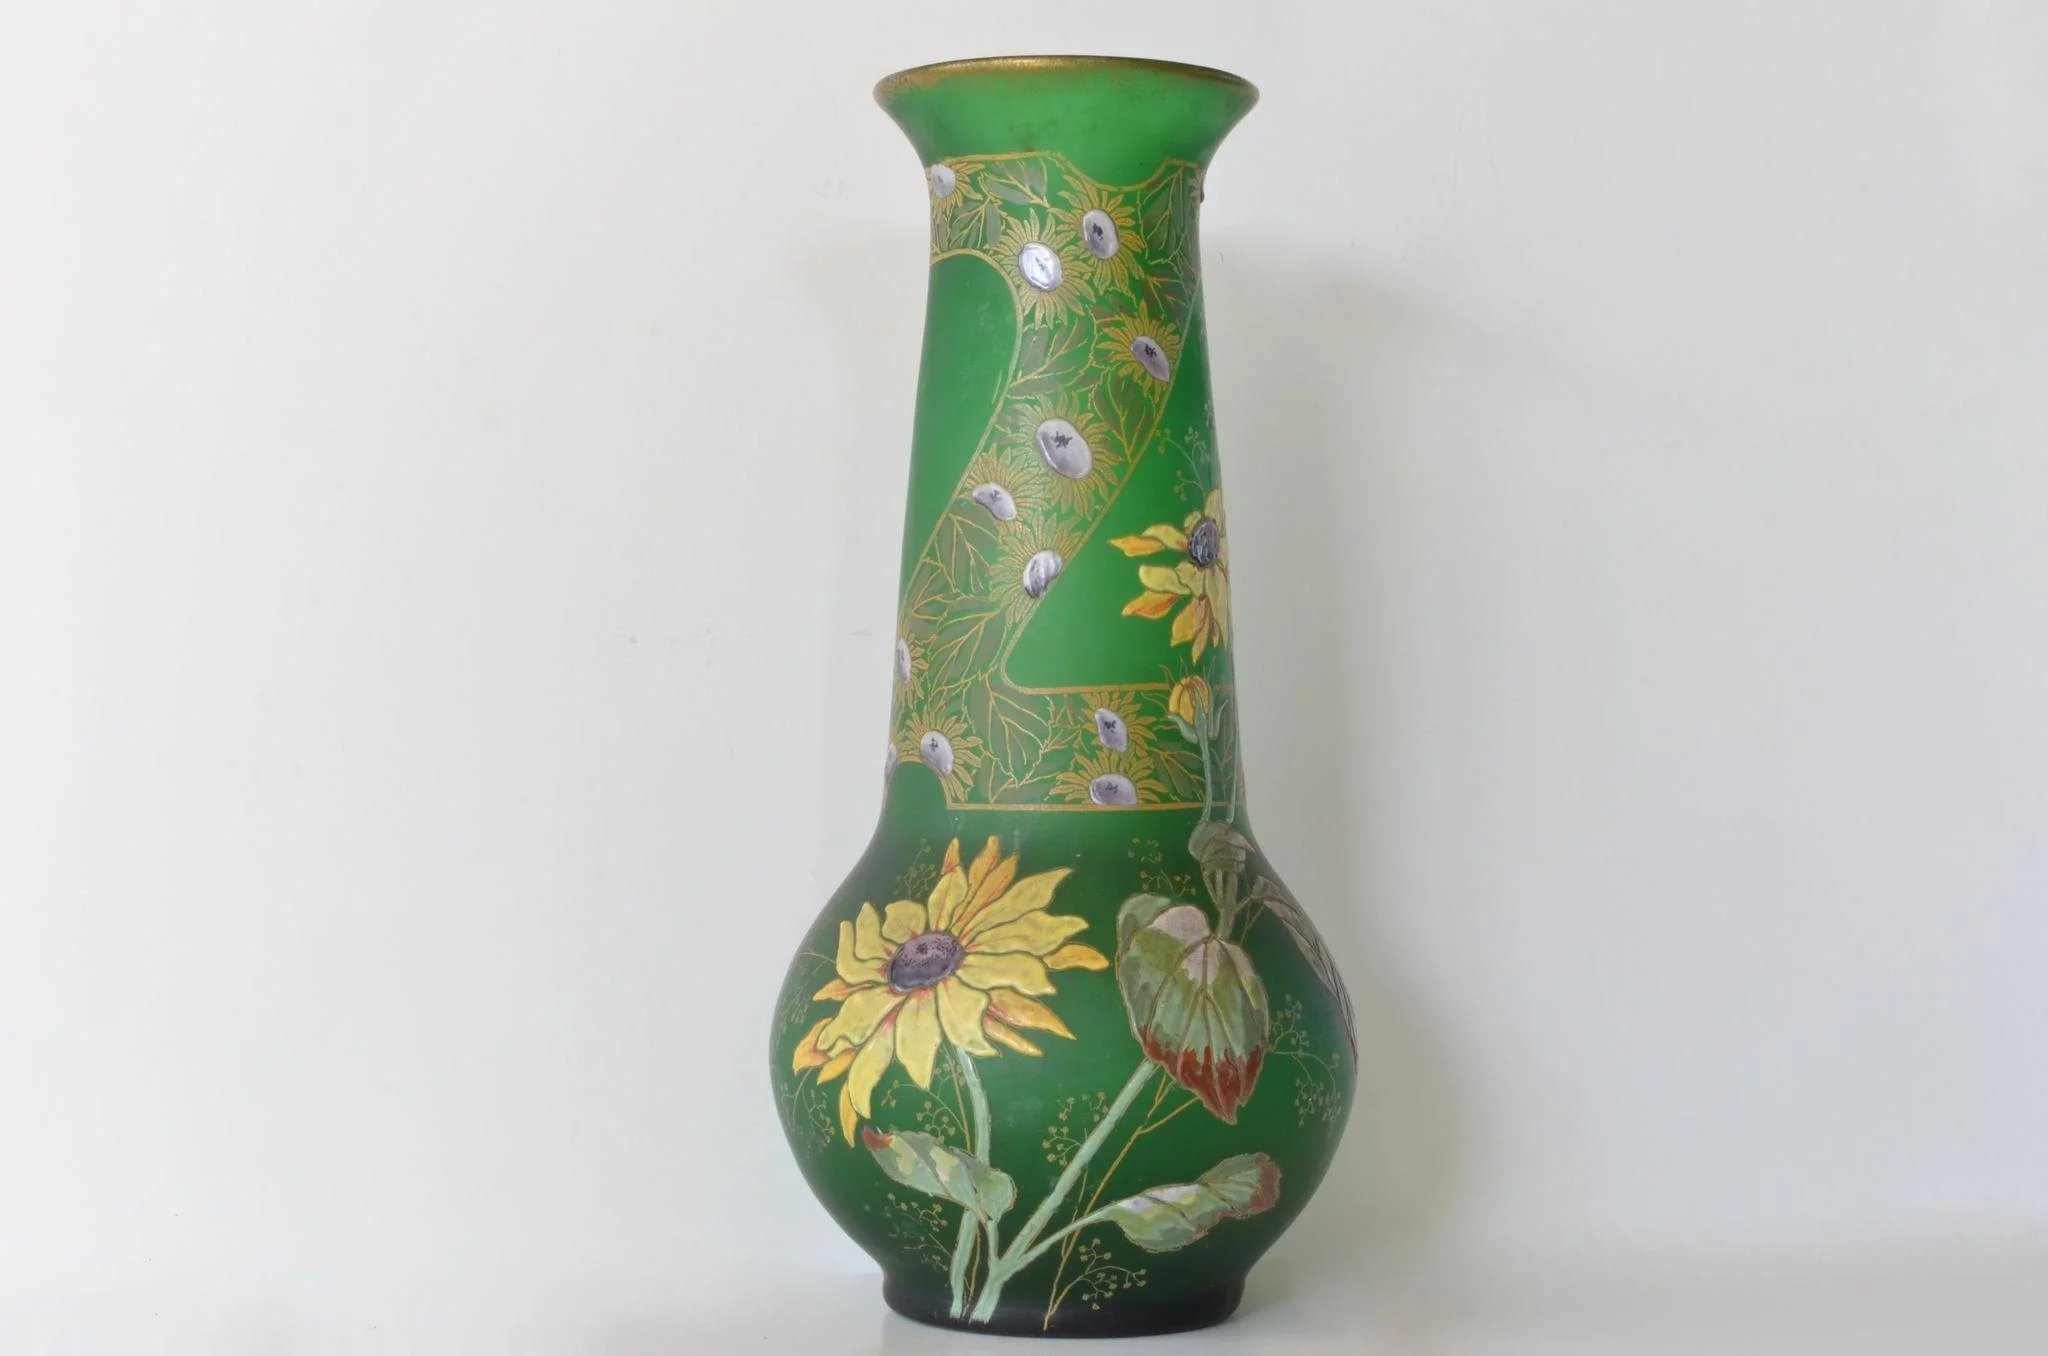 Aesthetic movement enamelled green glass vase 1860 to 1880 click to expand reviewsmspy